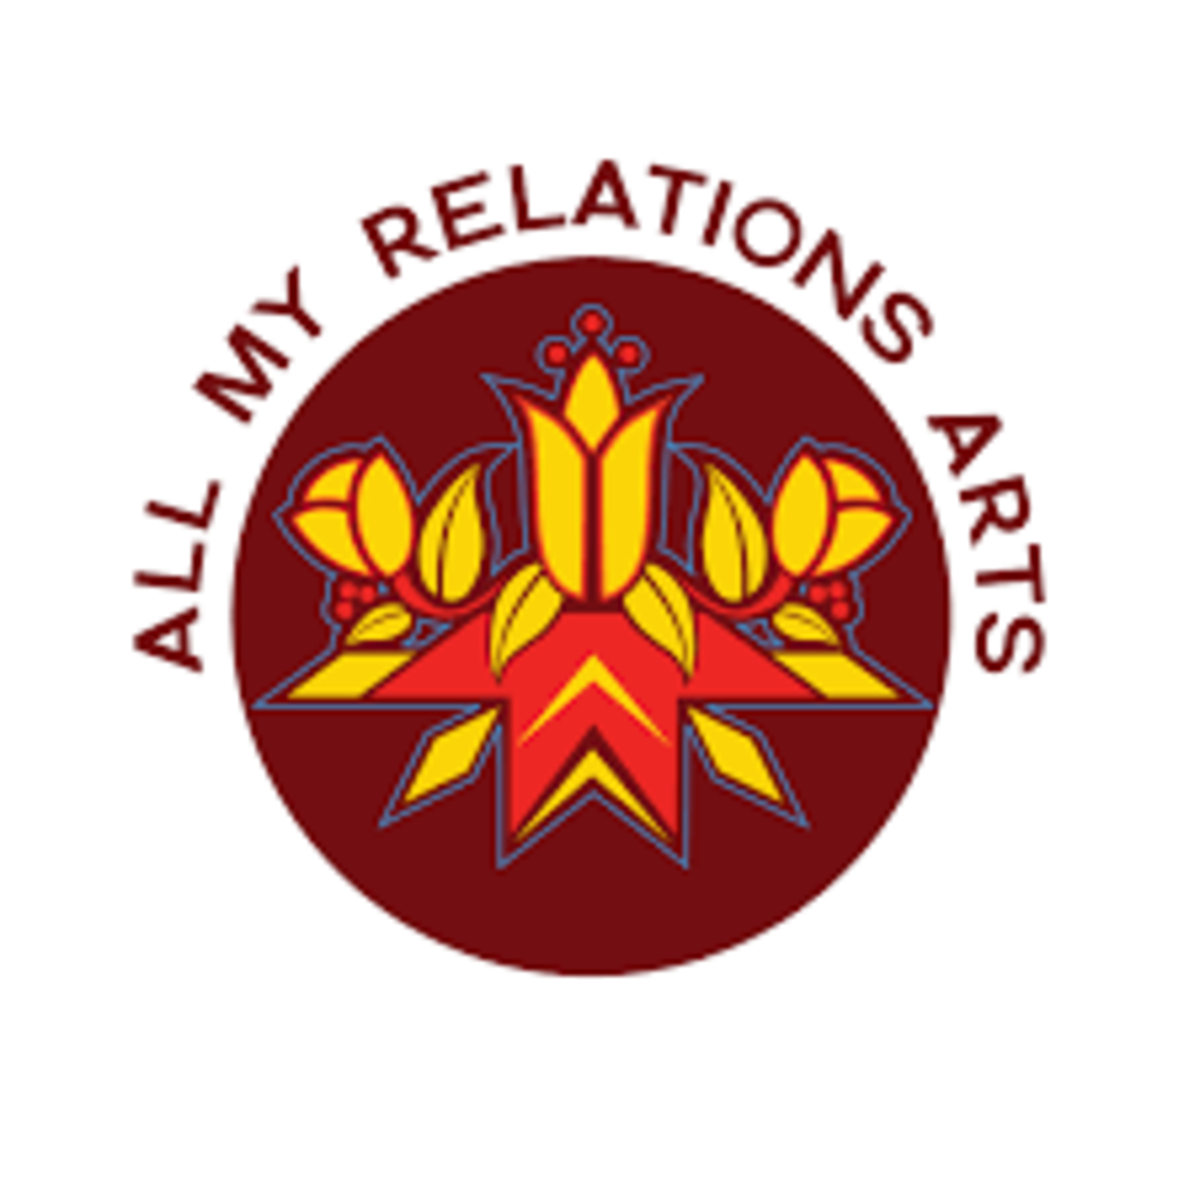 All My Relations Arts - logo